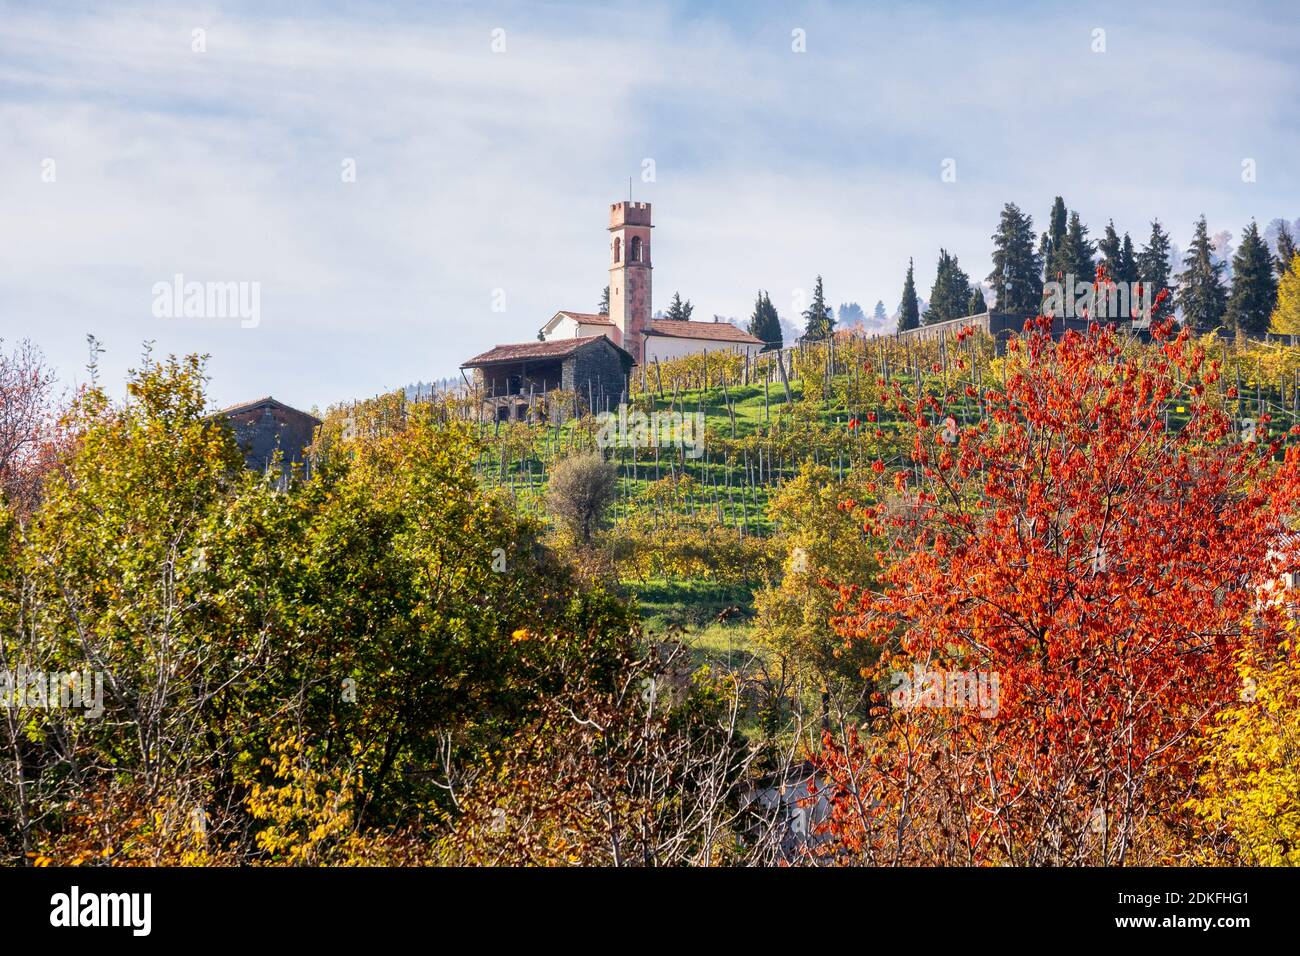 the oratory of the blessed virgin of sorrow on the hill of Combai, among the vineyards in autumn, Miane, Treviso, Italy, Europe Stock Photo